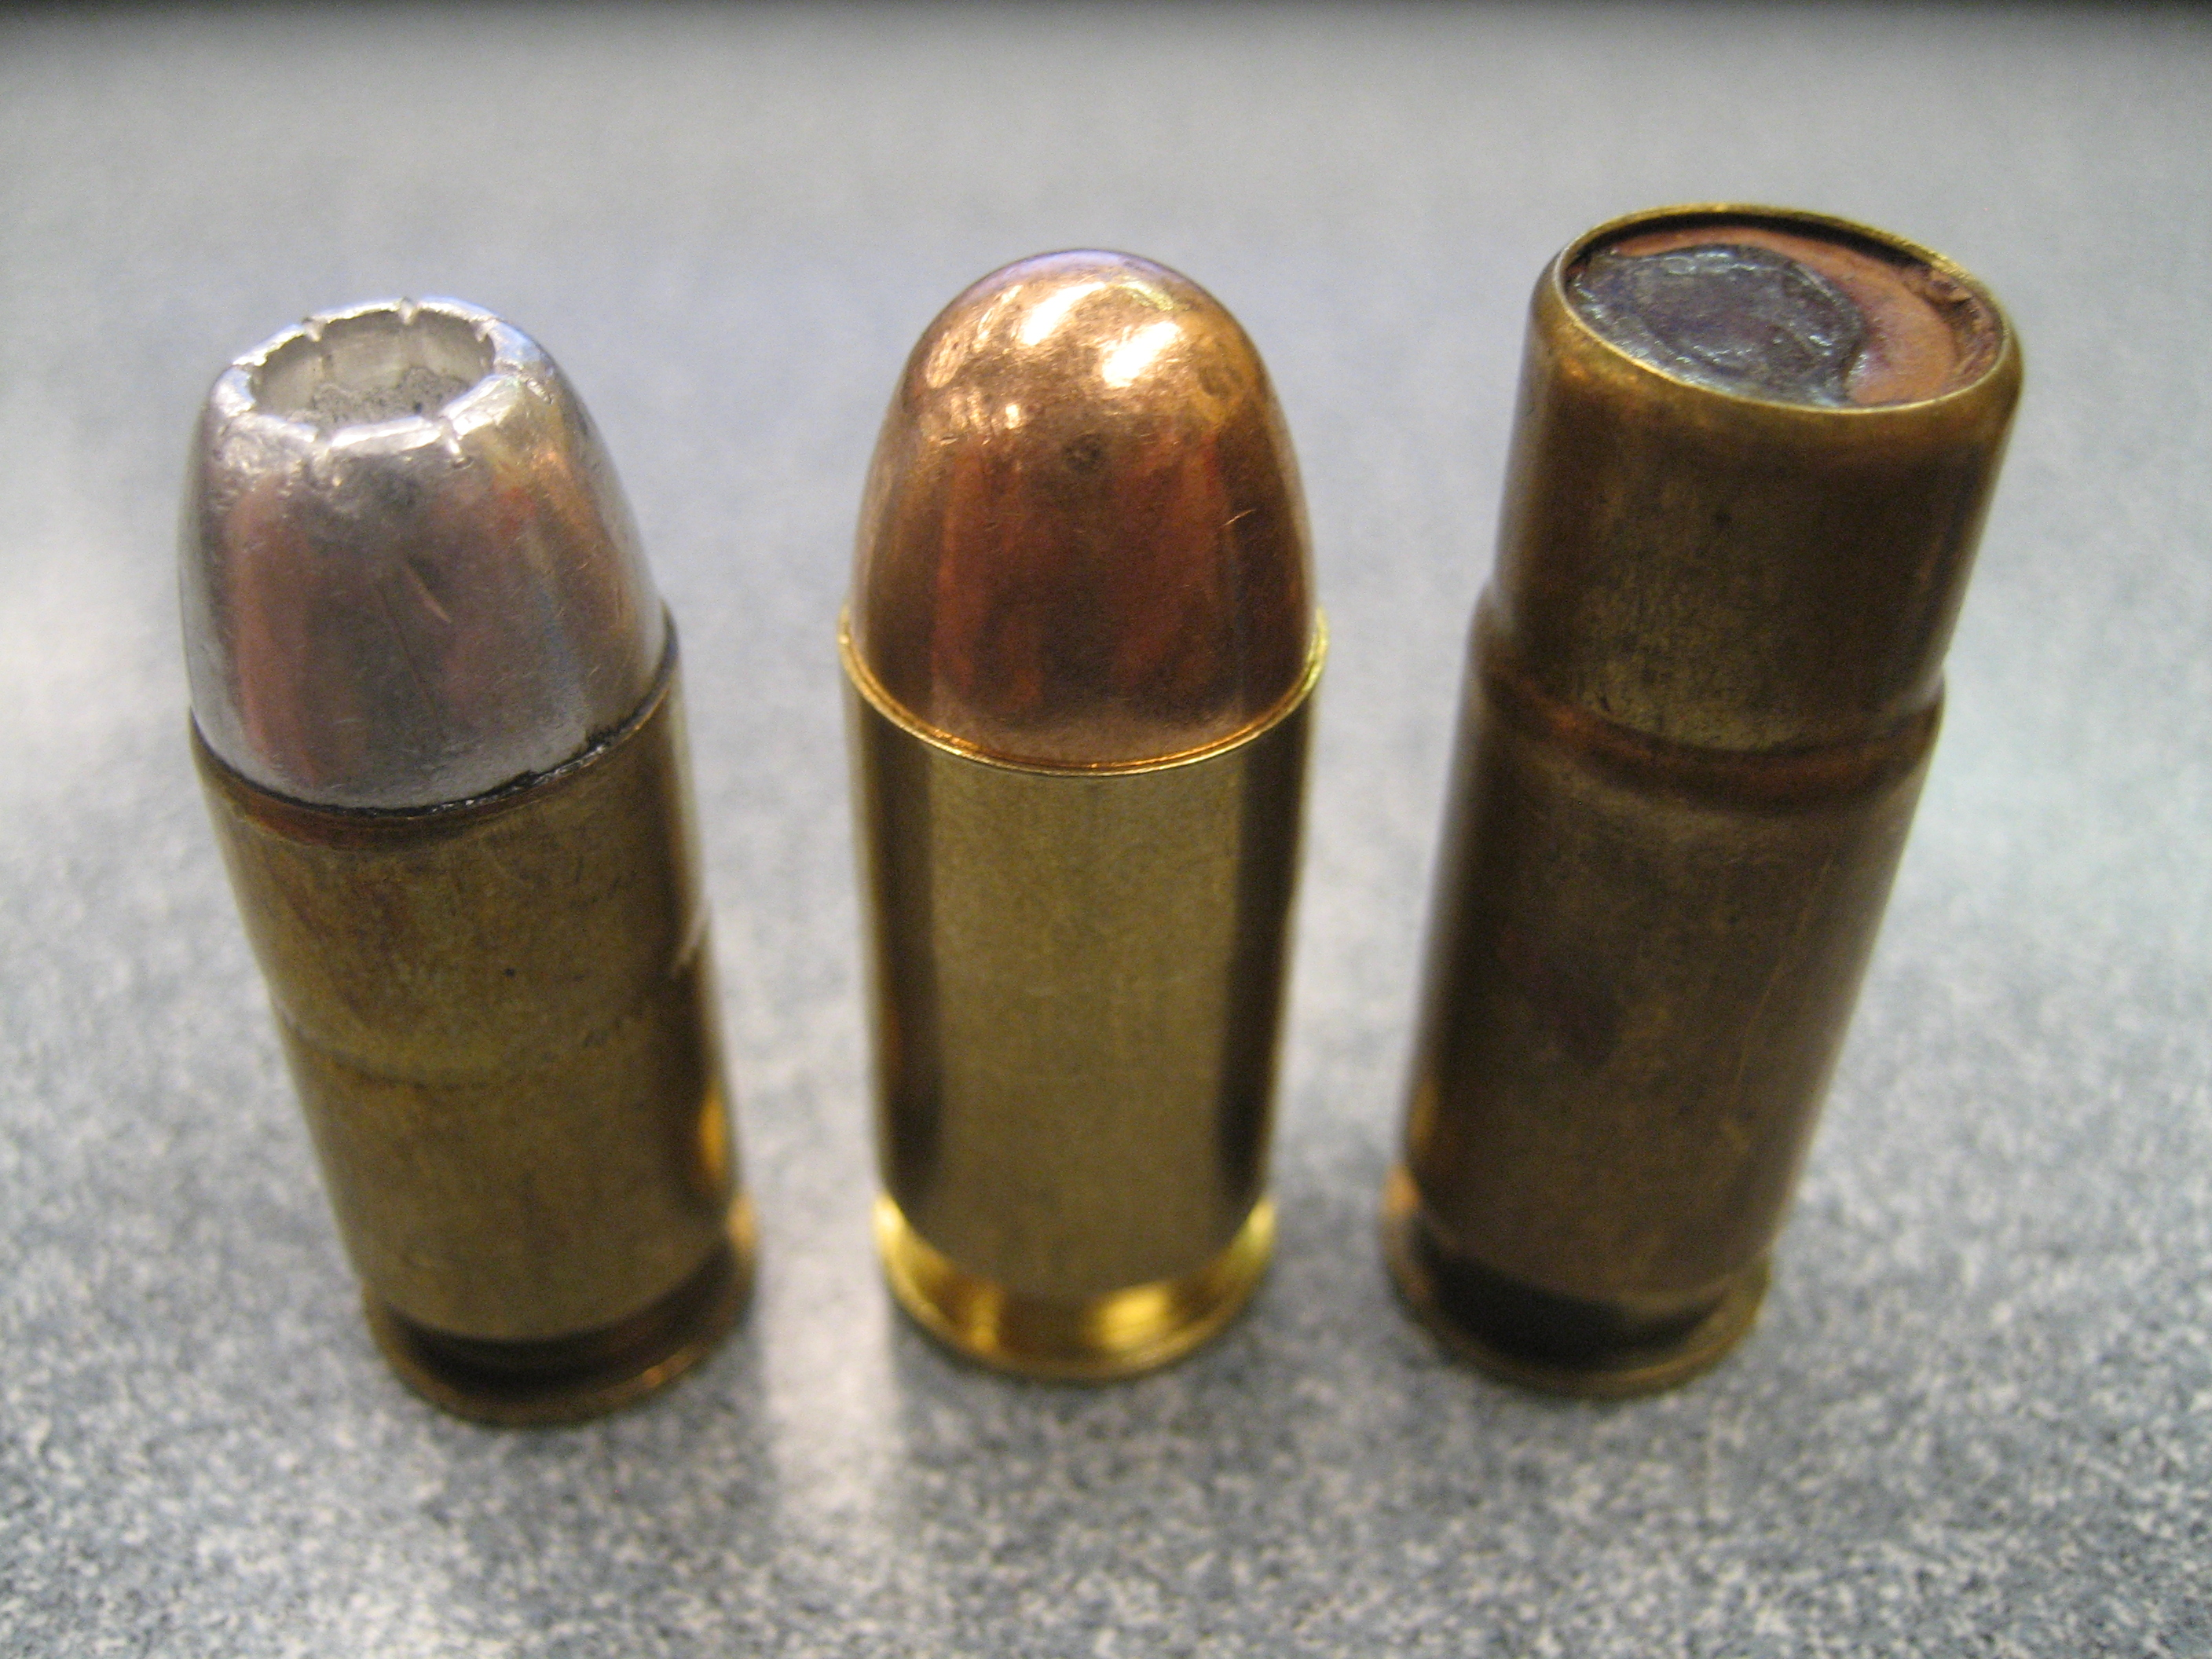 Full Hollow Hollow Point Full Metal